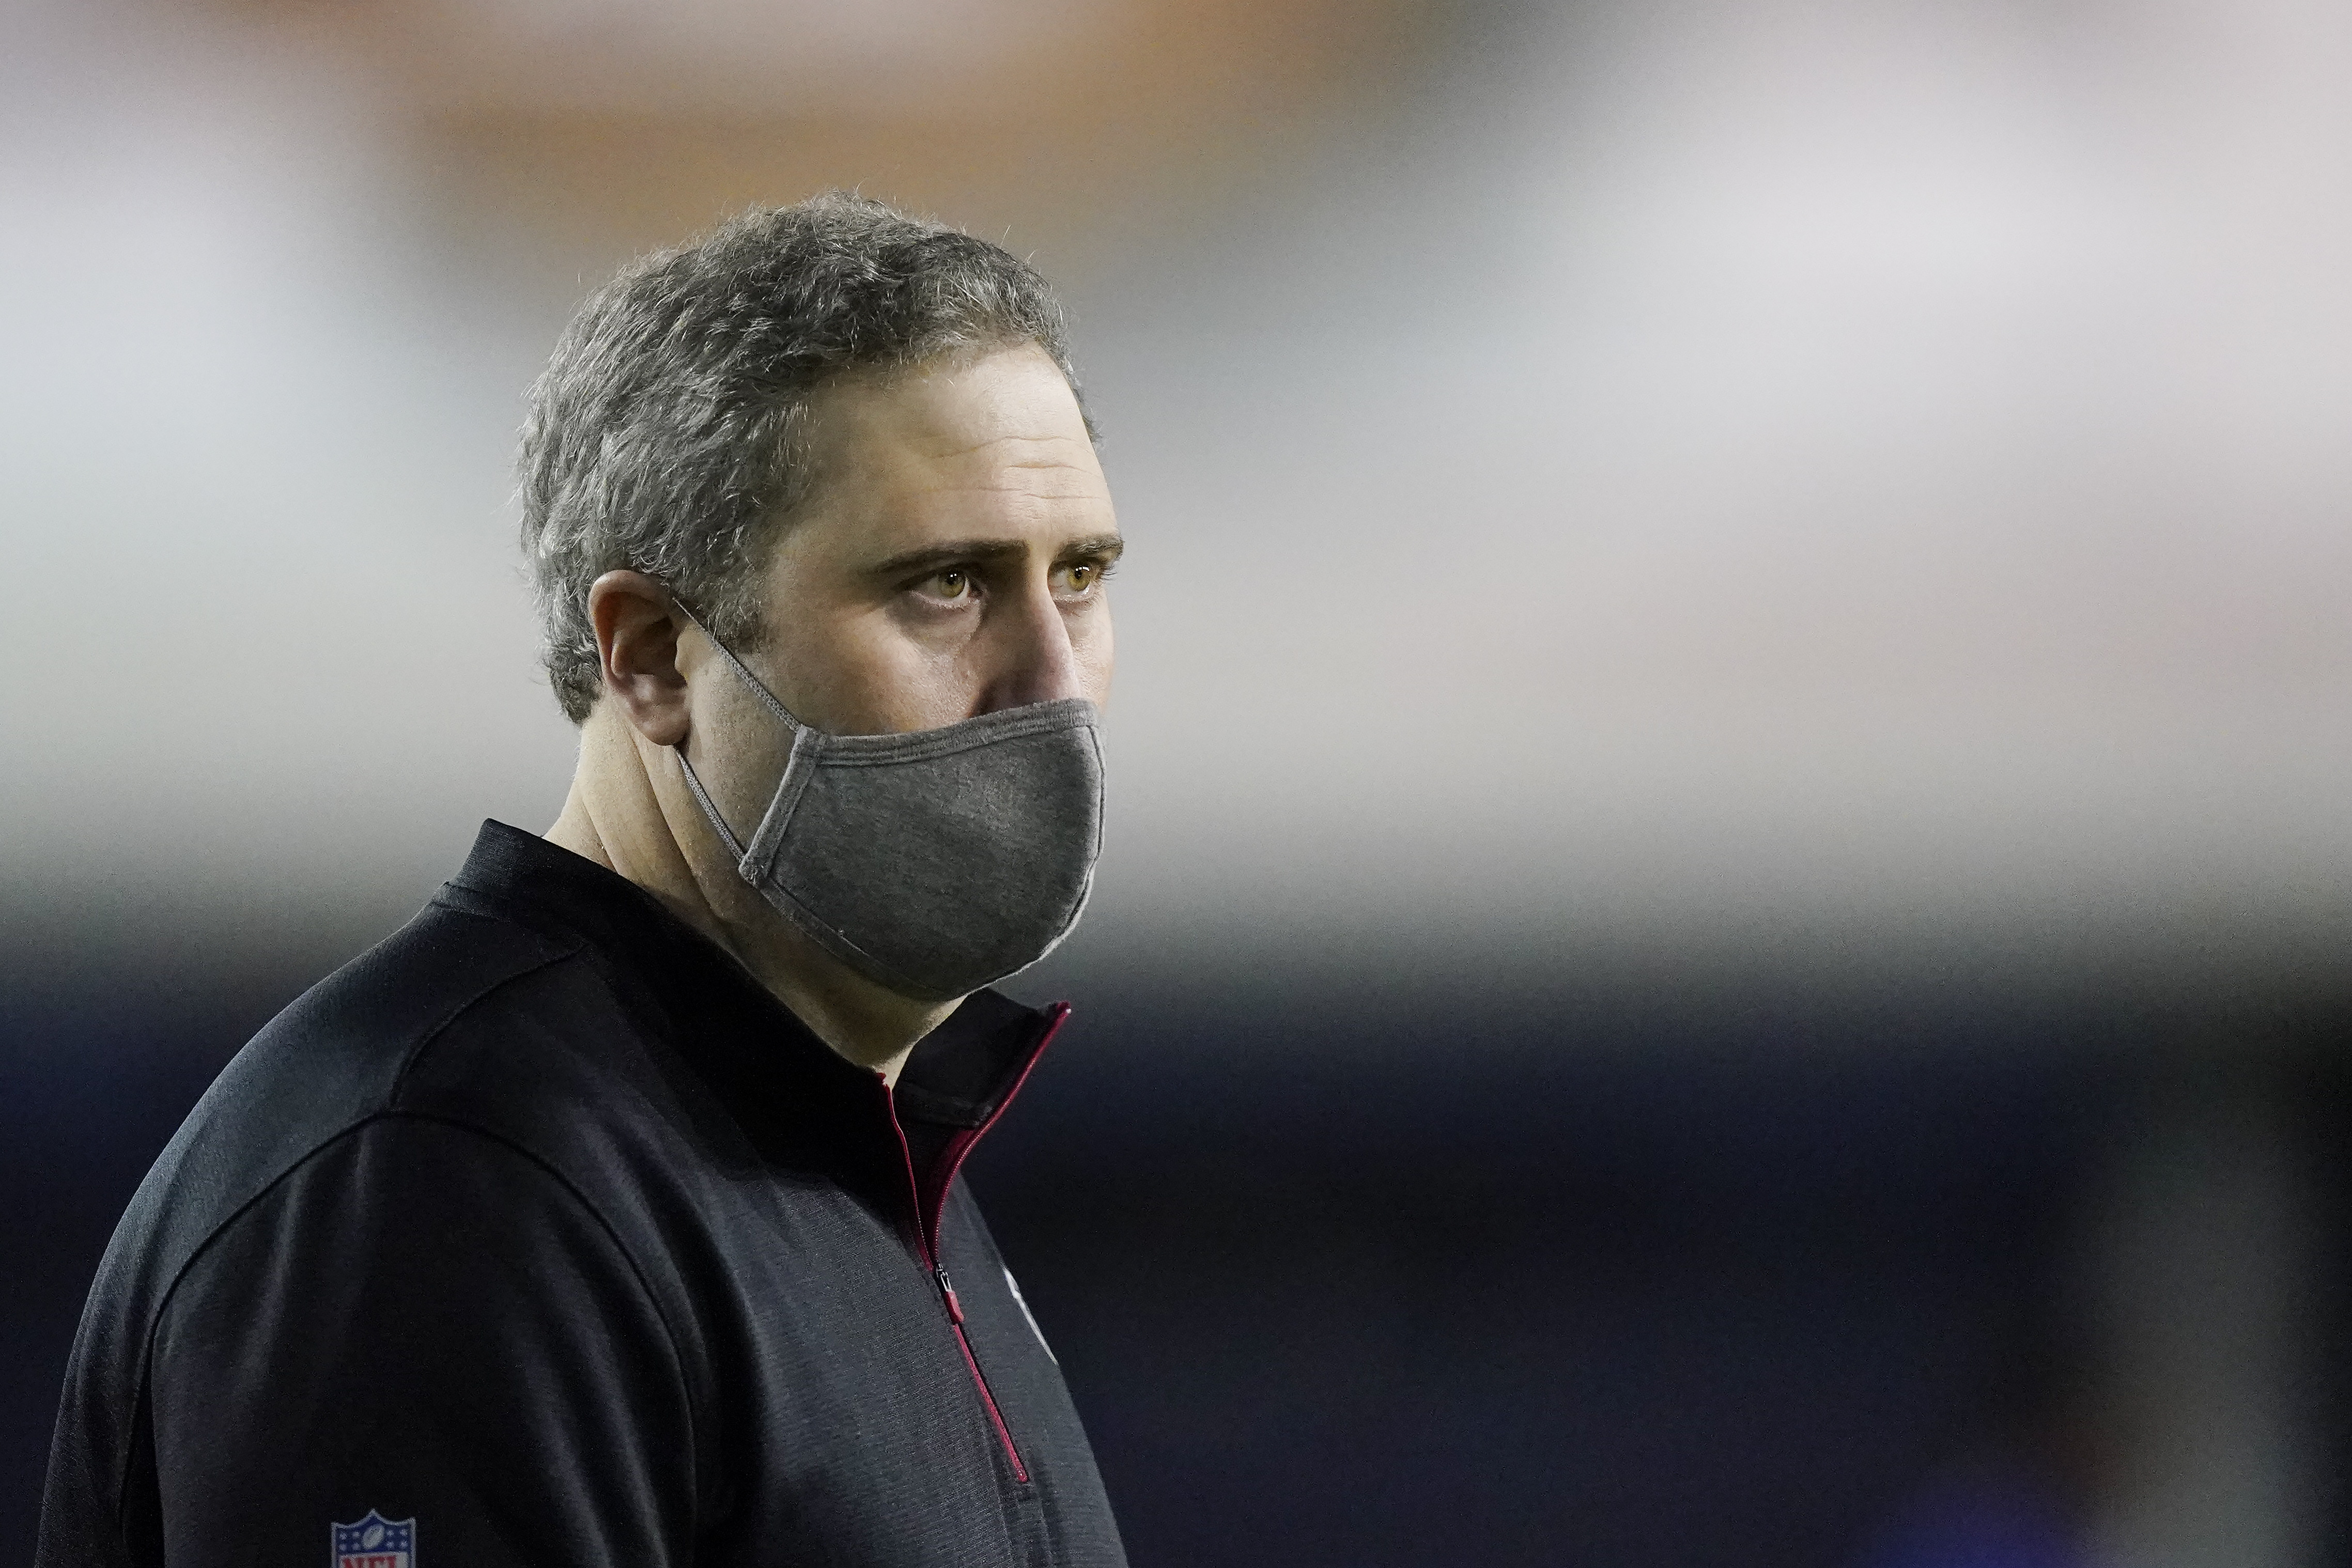 Report: Falcons GM, HC 'Aligned' on No. 4 Draft Pick amid Debate over Picking QB